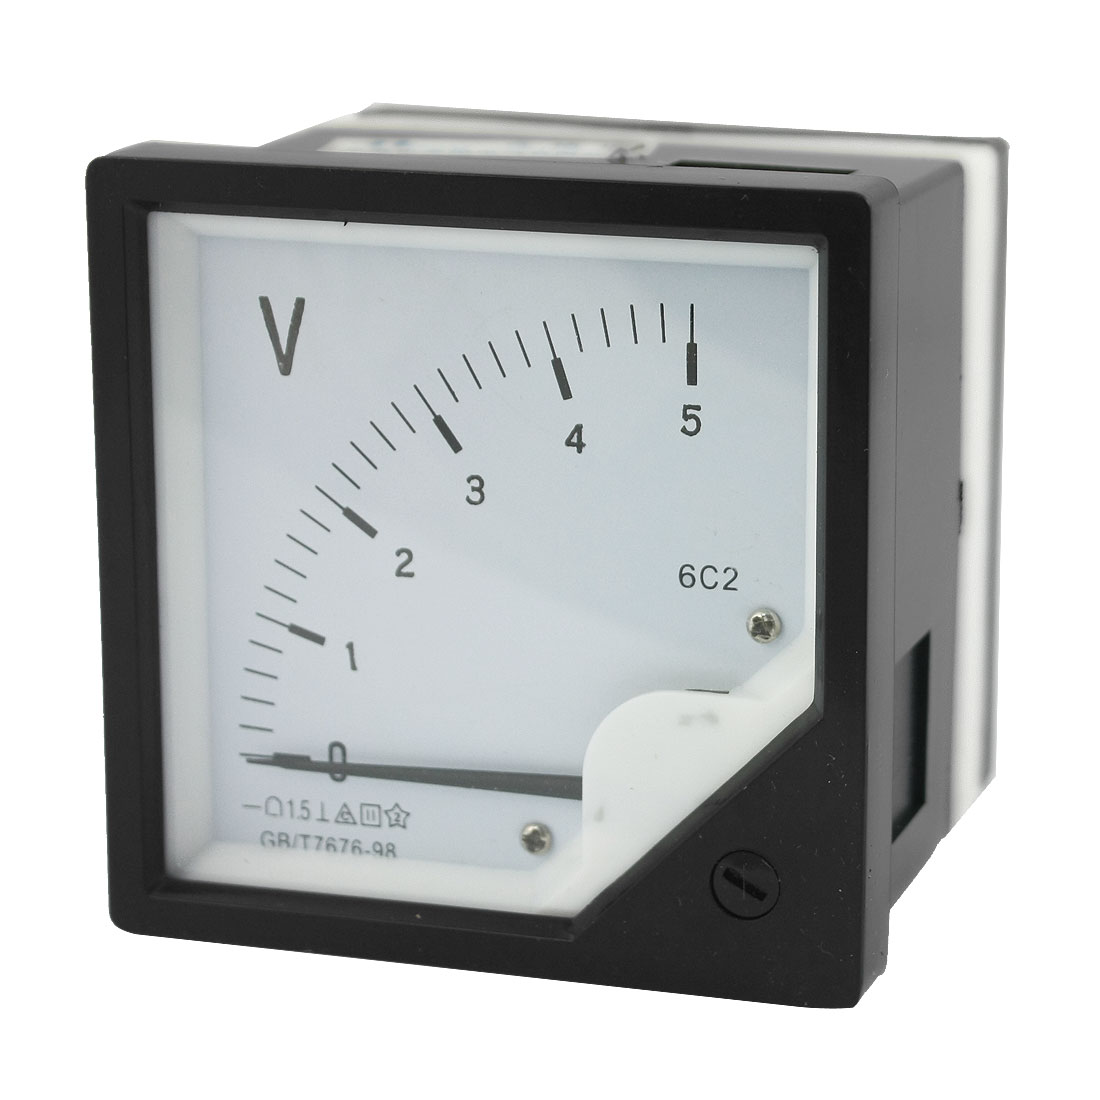 DC 0-5V Measuring Range Voltage Measurement Tool Rectangle Plastic Panel Analog Meter Voltmeter Class 2.5